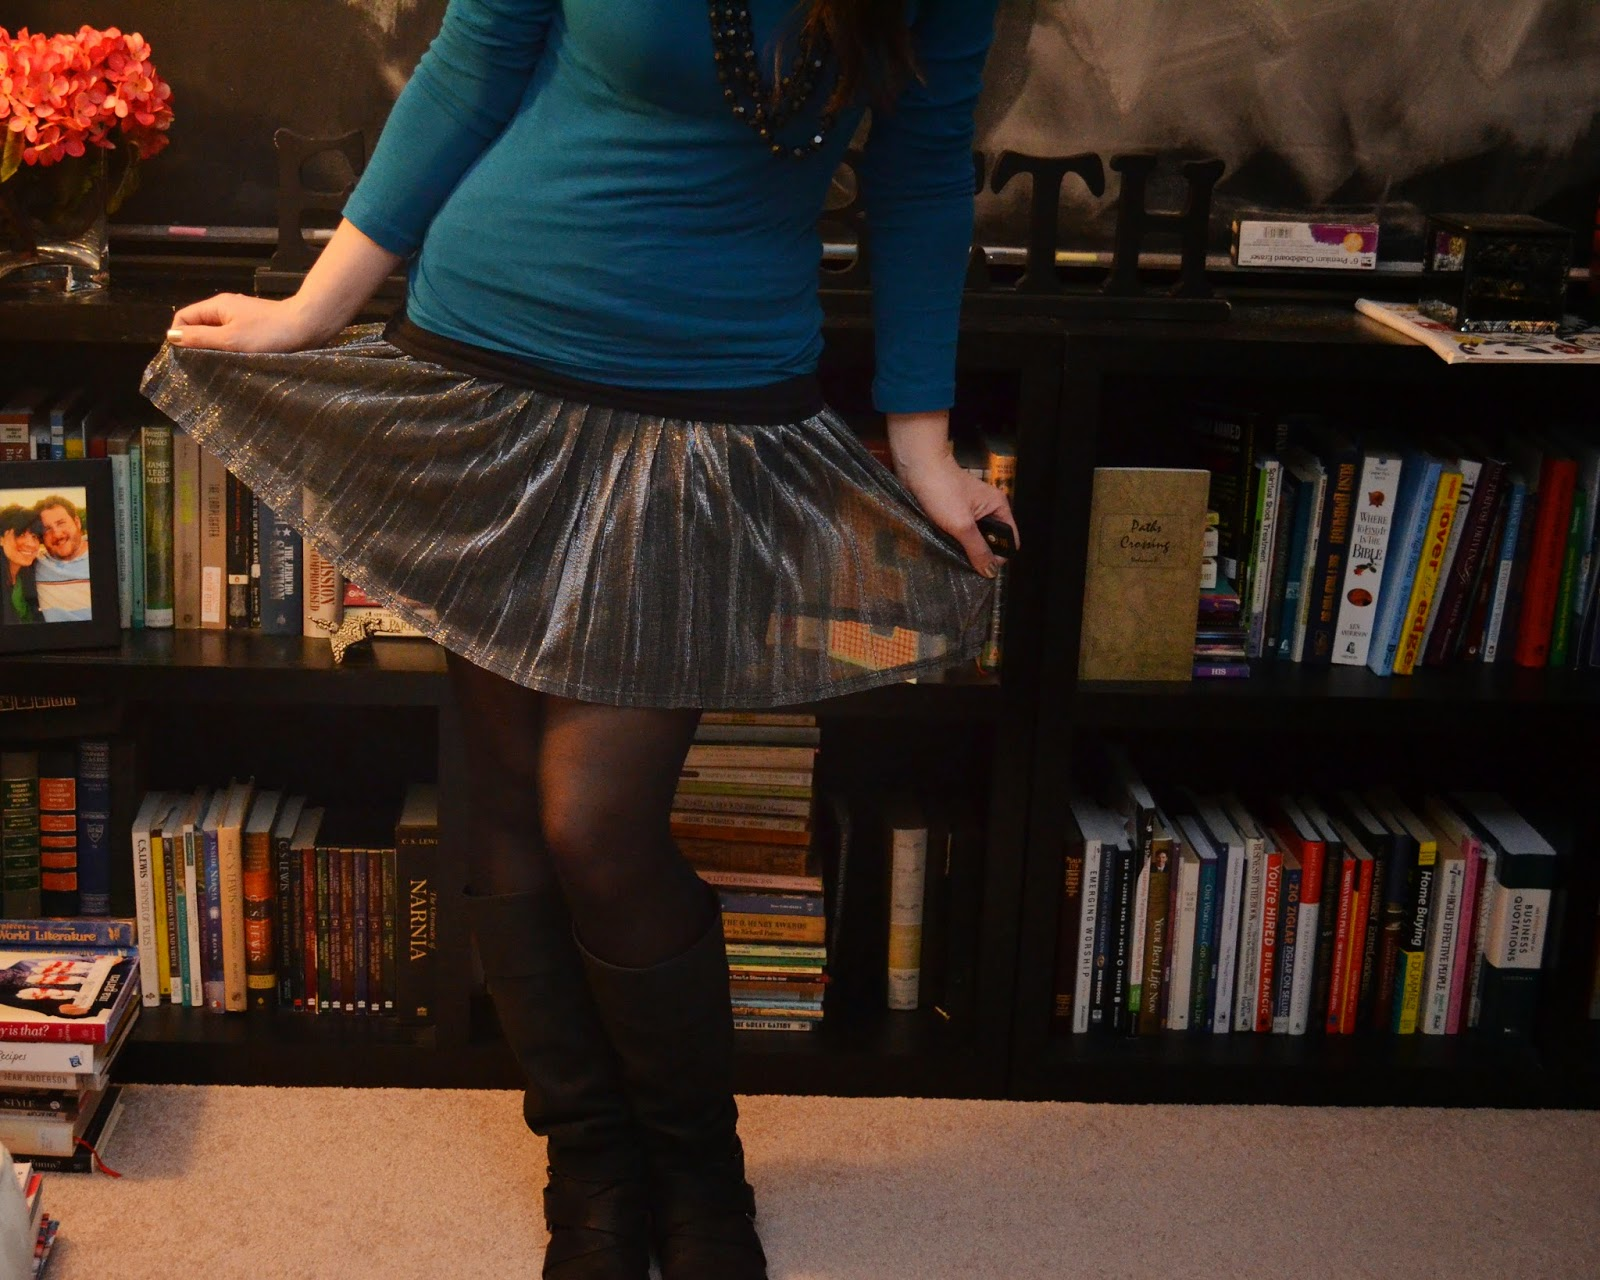 Metallic skirt and boots